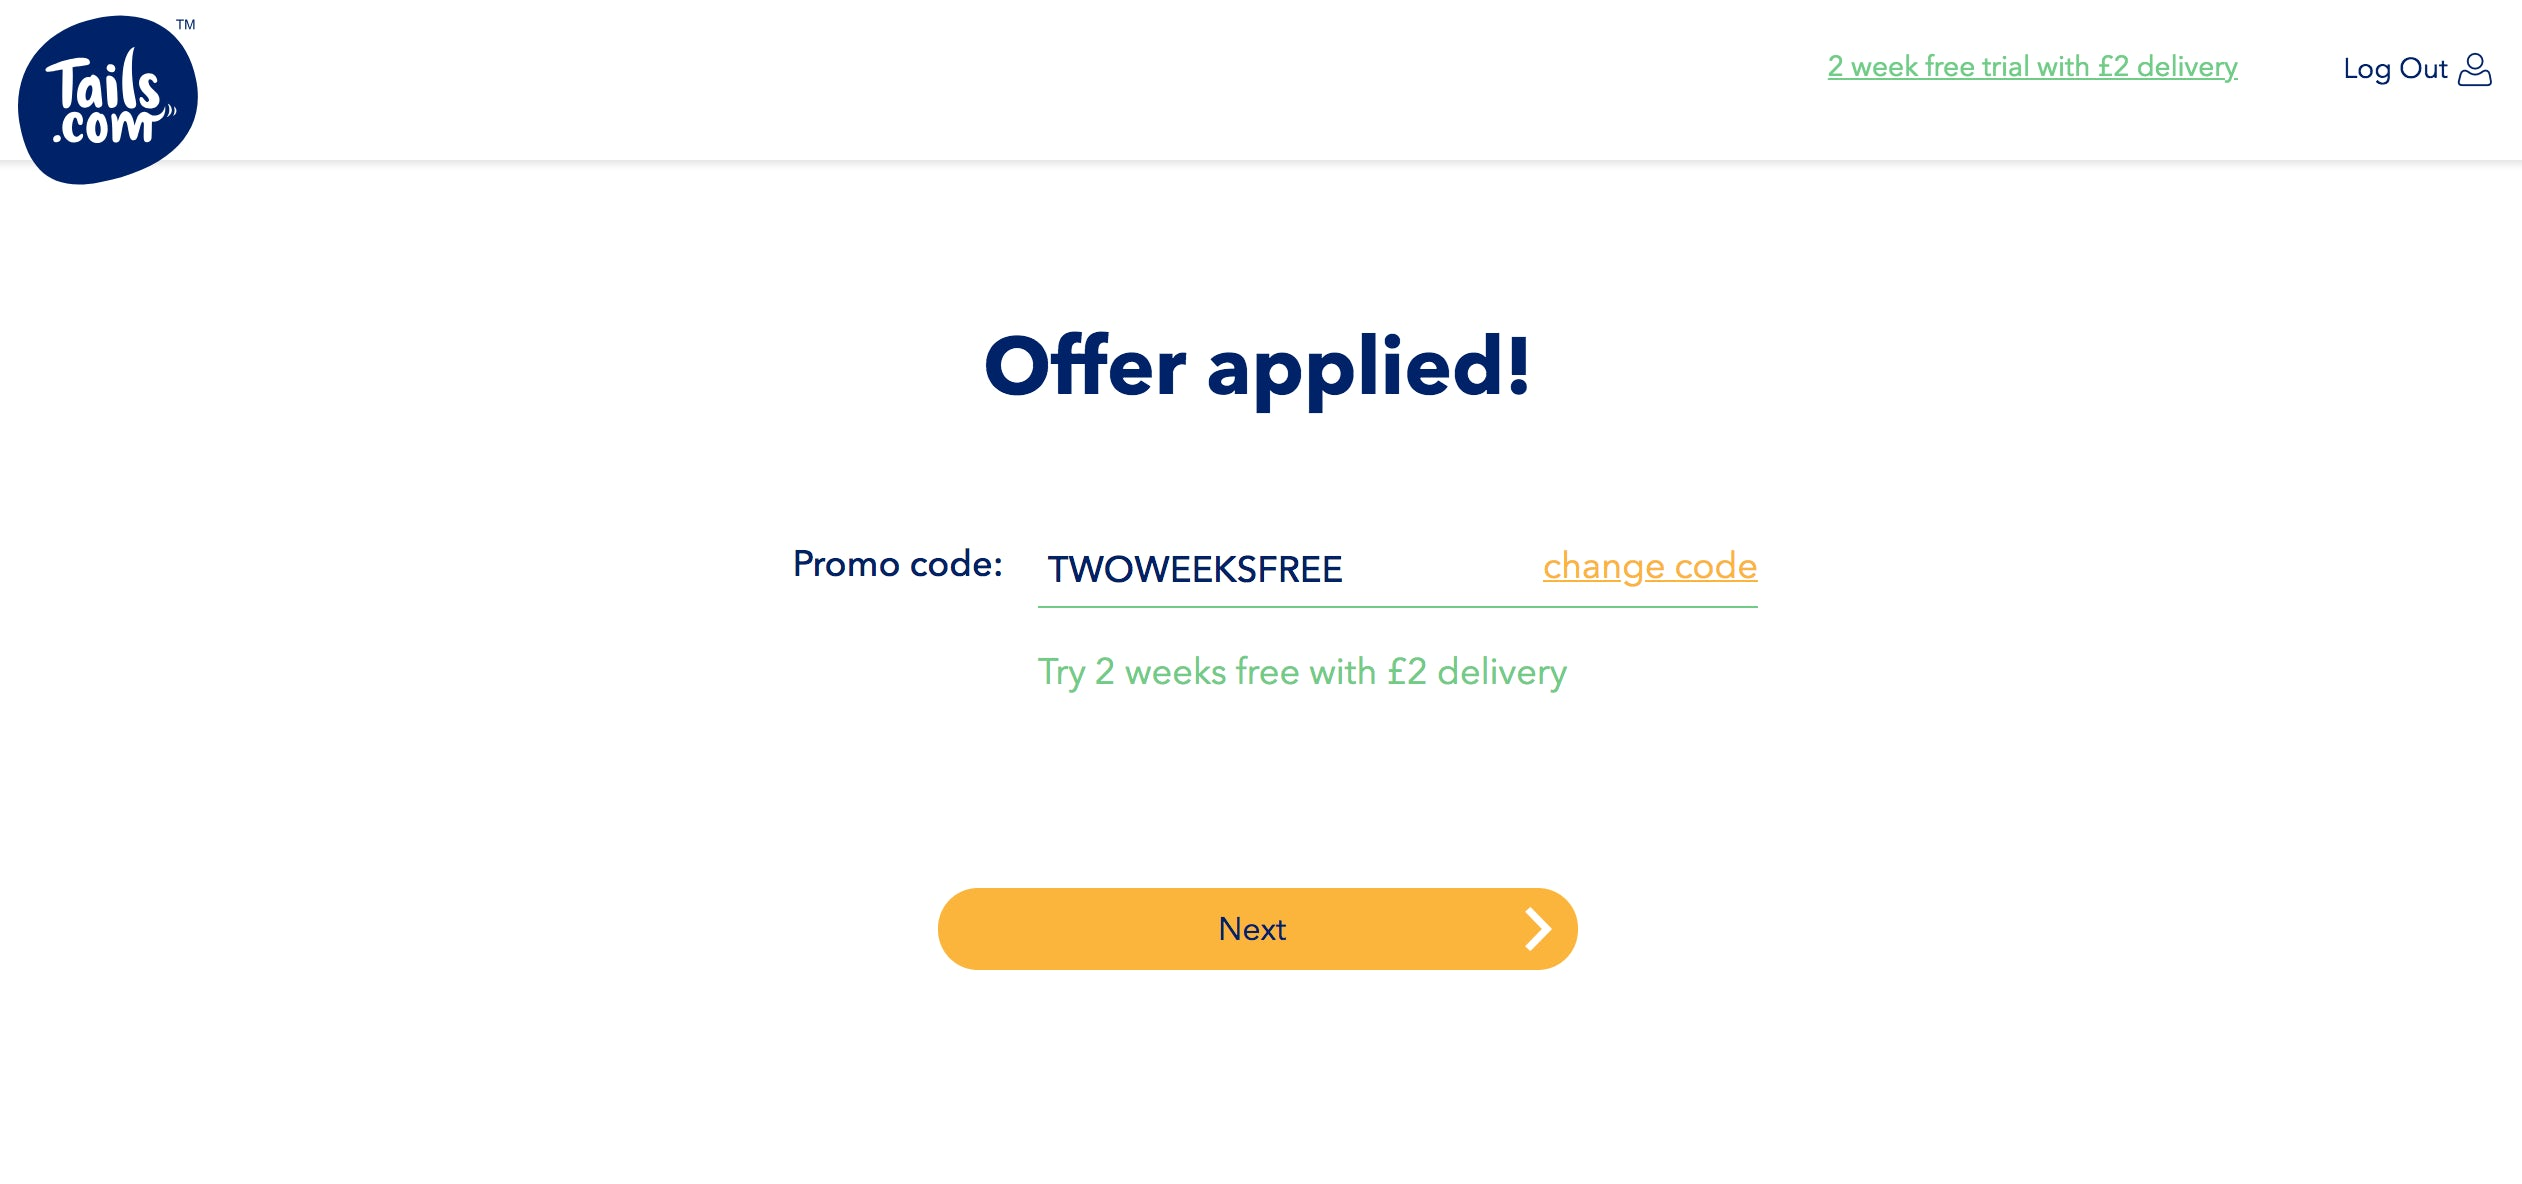 the tails.com website offering 2-week free trial